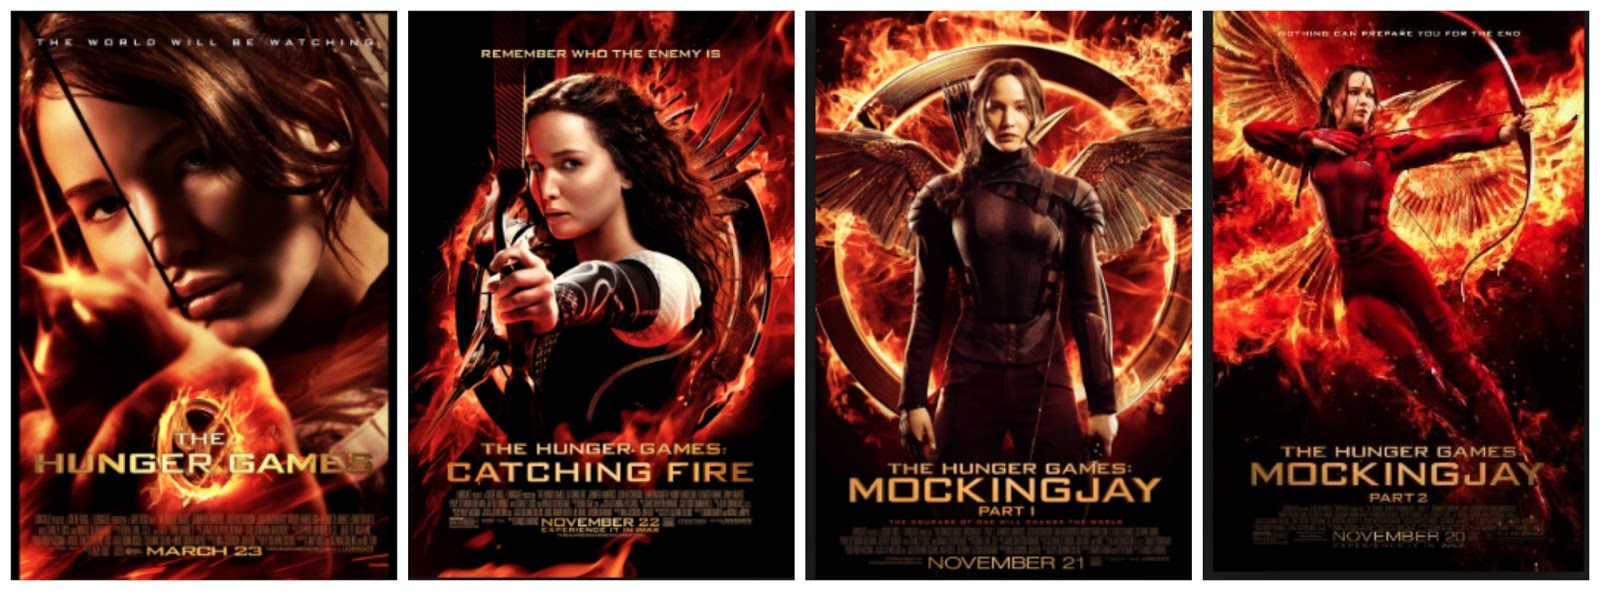 The Hunger Games | Film Series - IMDb